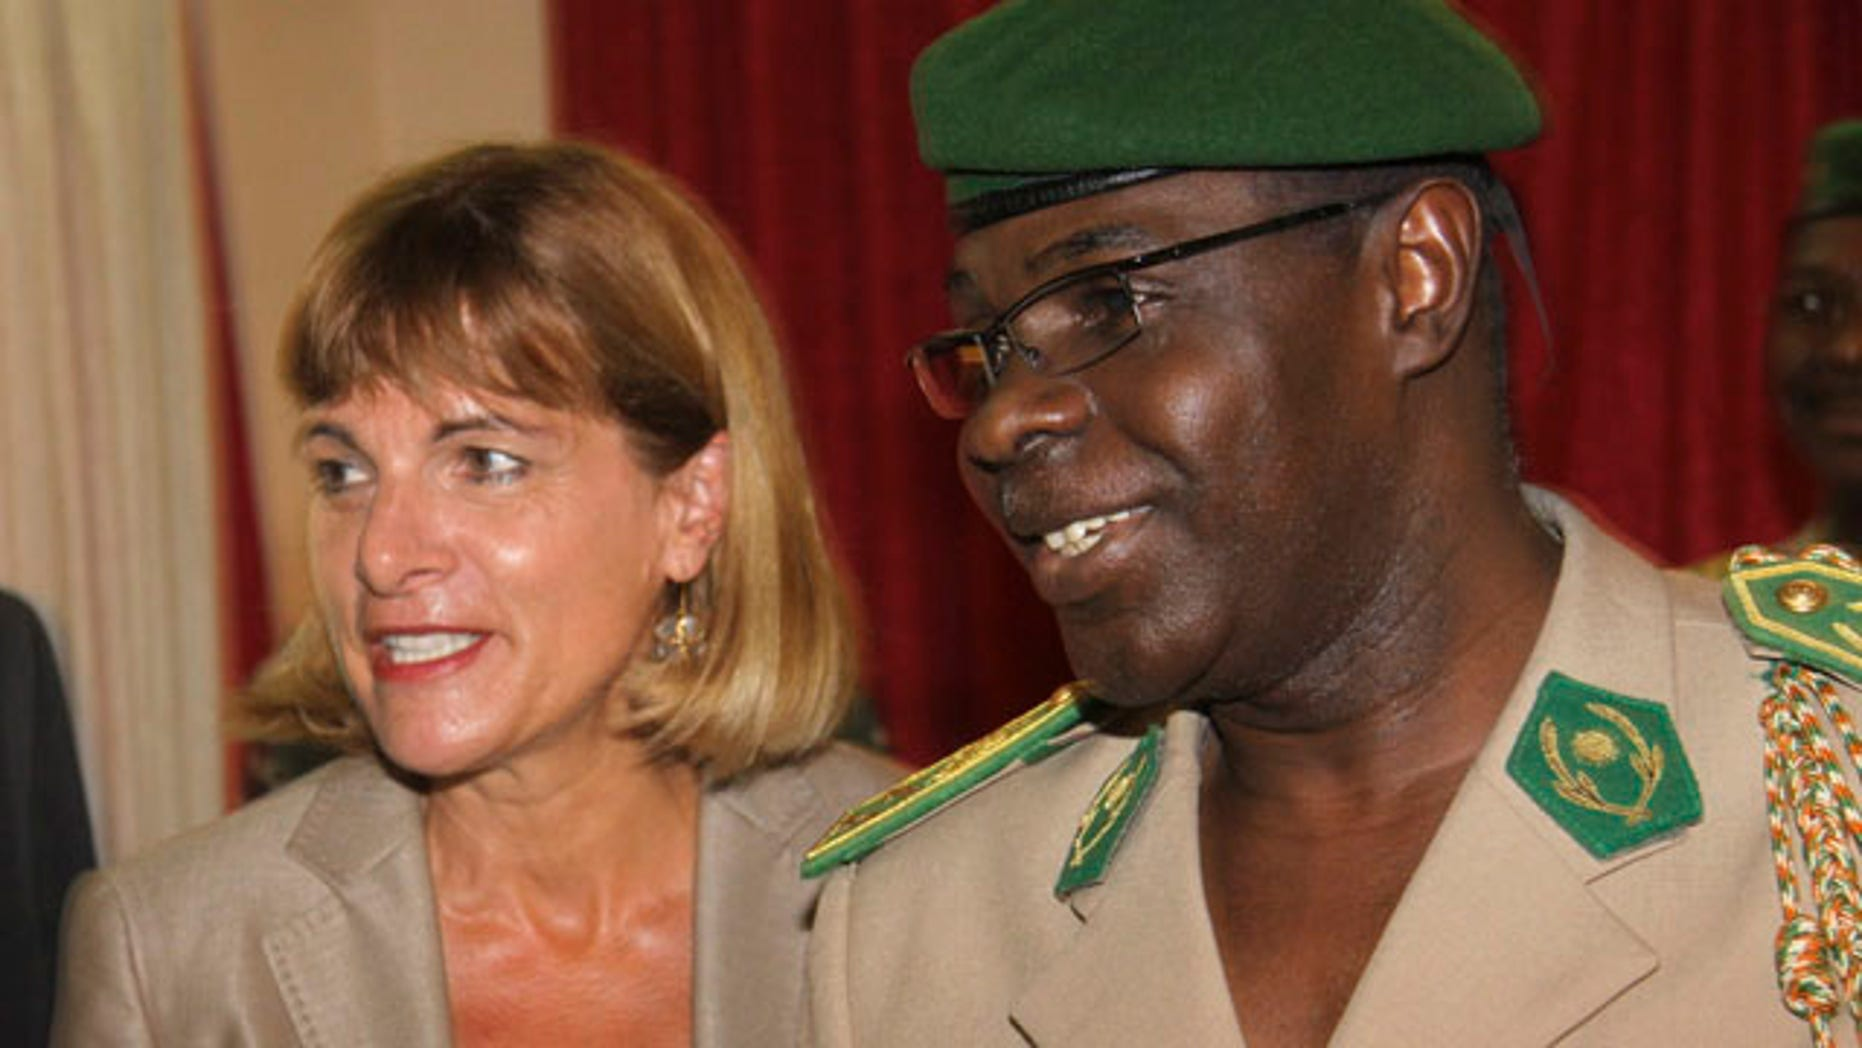 Sept. 30, 2010: Areva President Anne Lauvergeon, left, meets with Salou Djibo, head of Niger's ruling military junta, in Niamey, Niger.